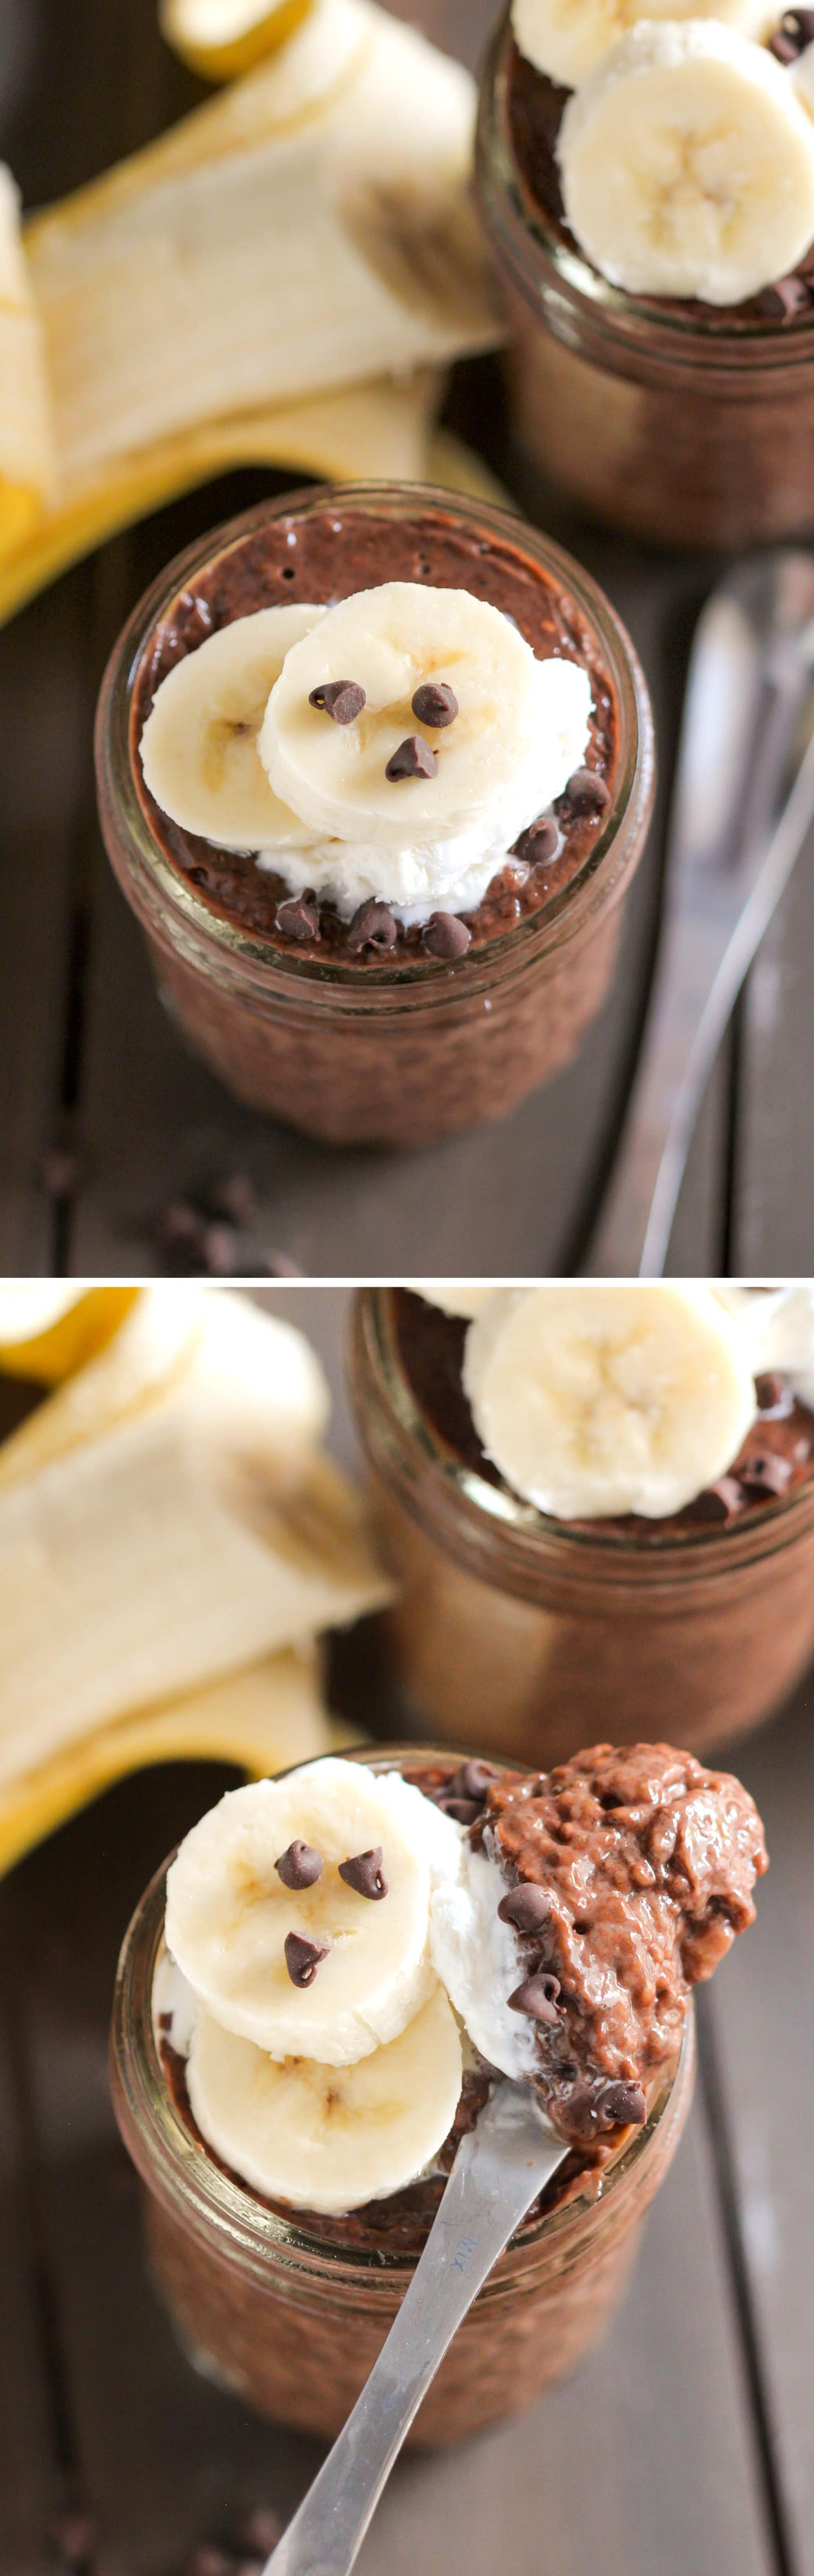 This Chocolate Banana Chia Seed Pudding recipe is perfectly sweet, deliciously chocolatey, and surprisingly filling! Makes for a great breakfast because it's full of healthy ingredients such as chia seeds (high in omega-3 fatty acids) and bananas (high in potassium), and it also happens to be refined sugar free, high fiber, gluten free, and vegan too! Healthy Dessert Recipes at the Desserts With Benefits Blog (www.DessertsWithBenefits.com)